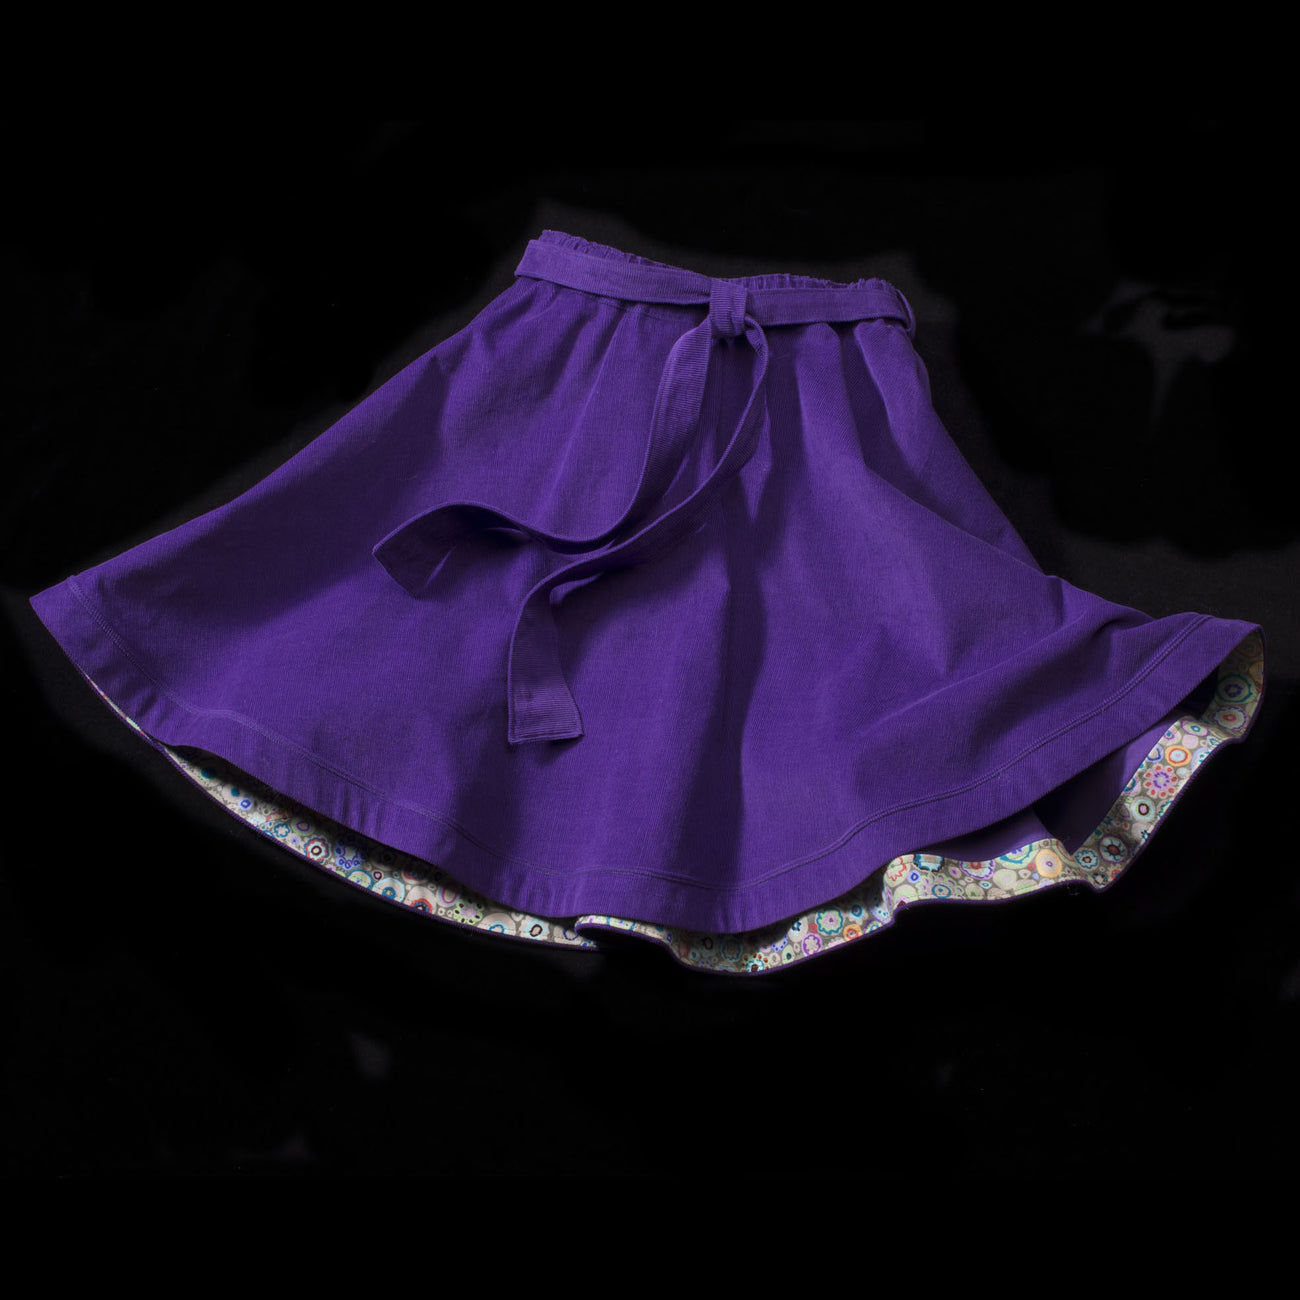 The Allegro Skirt with Sash